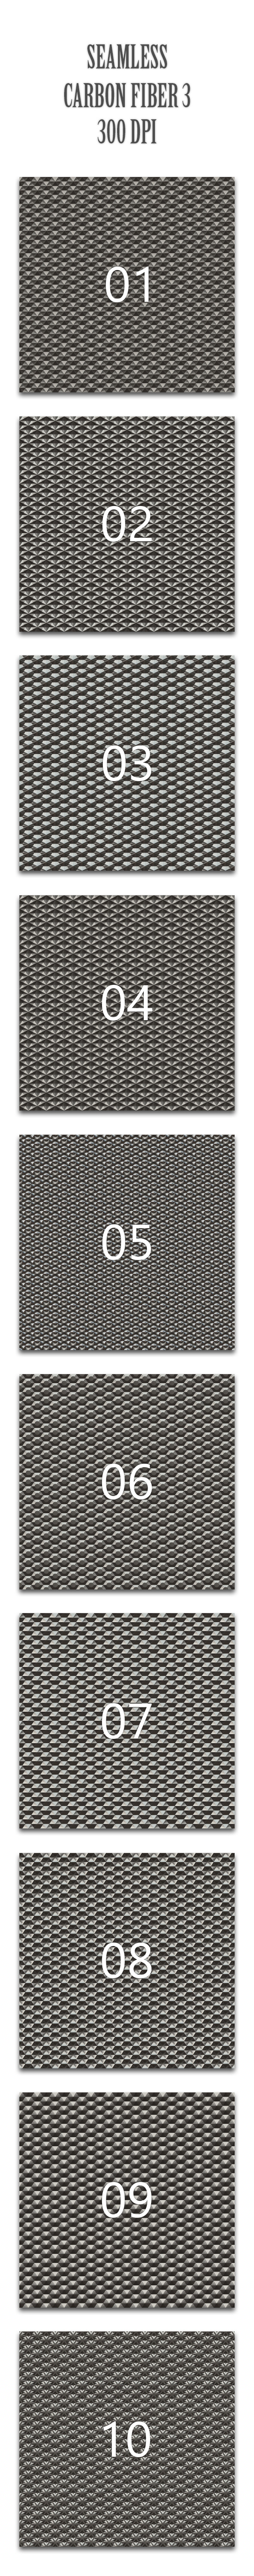 GraphicRiver Seamless Carbon Fiber 3 20246479